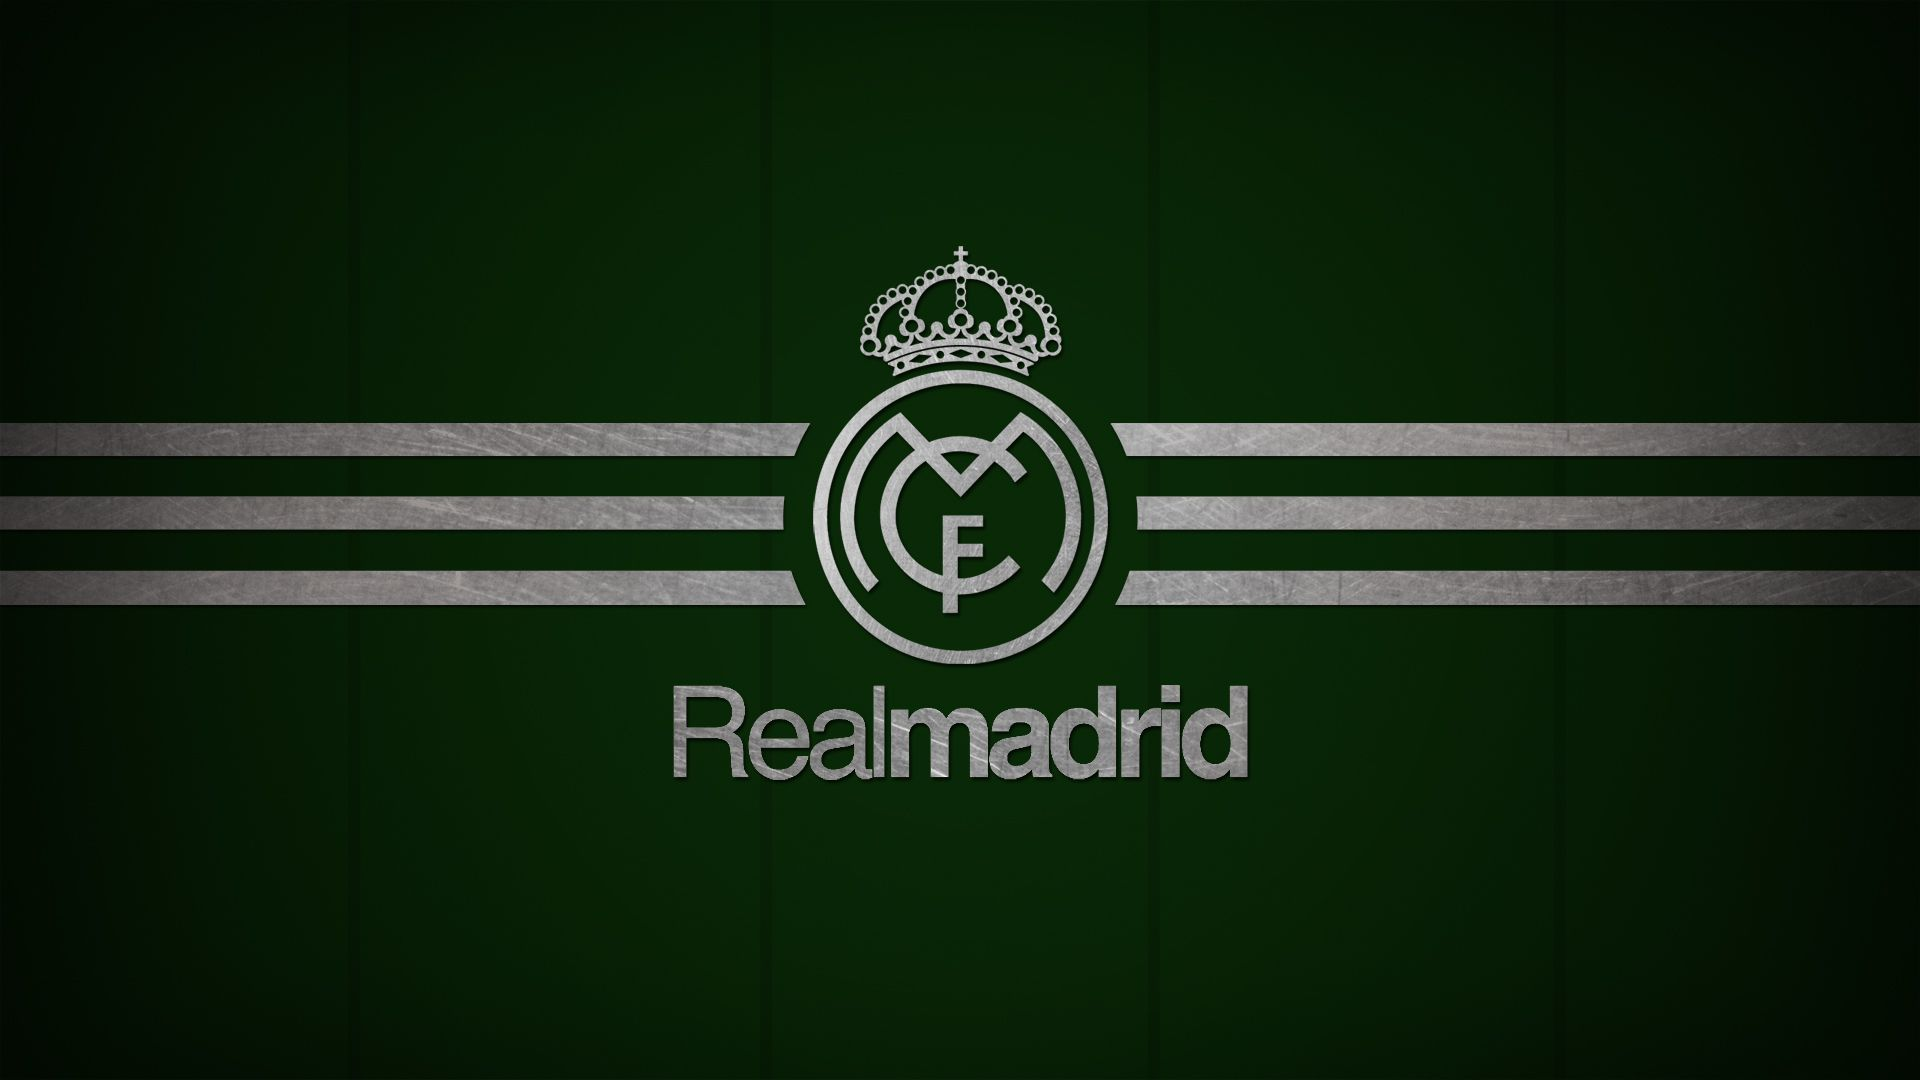 Poster Real Madrid Real madrid wallpapers, Madrid